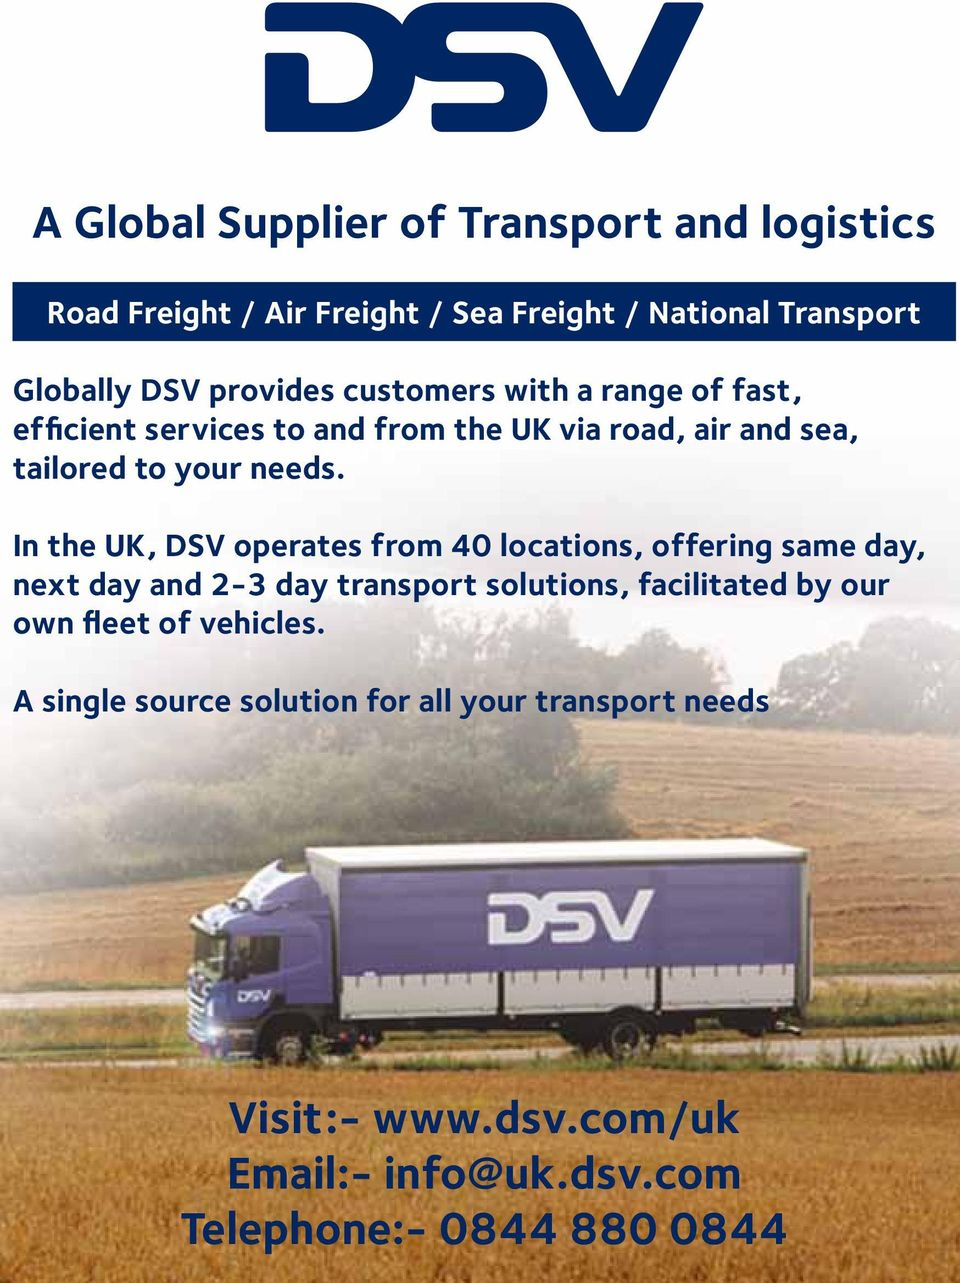 In the UK, DSV operates from 40 locations, offering same day, next day and 2-3 day transport solutions, facilitated by our own